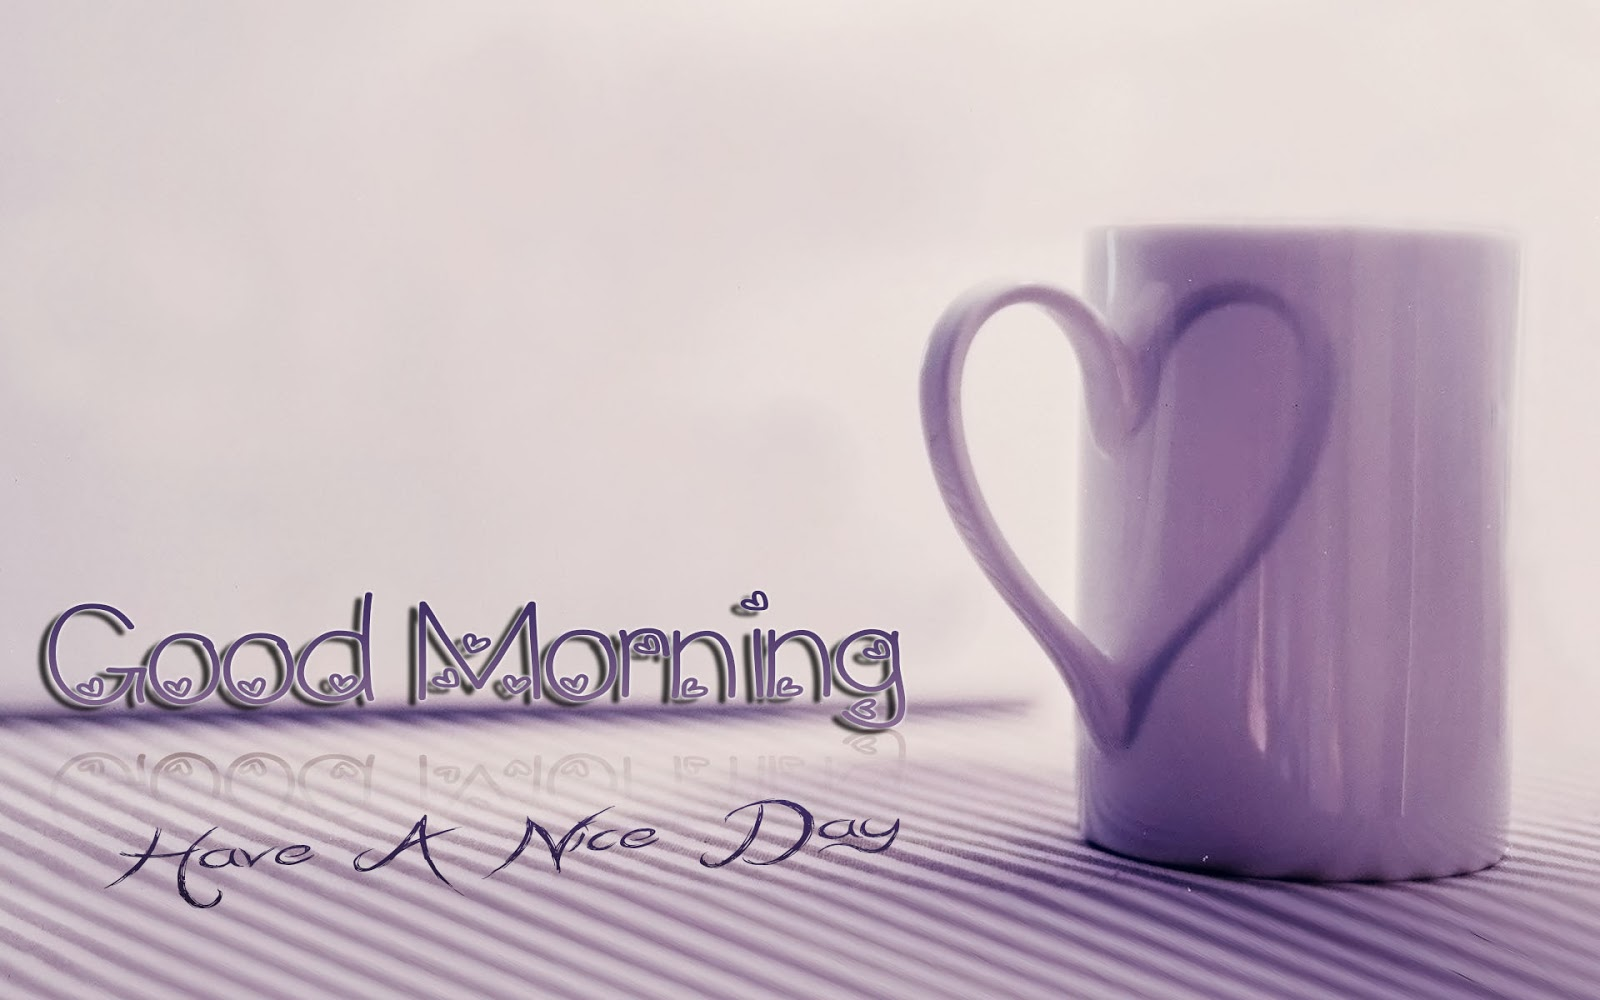 Good-Morning-With-Cup-Of-Coffee-Wishes-Wallpaper-Image-HD-Wide